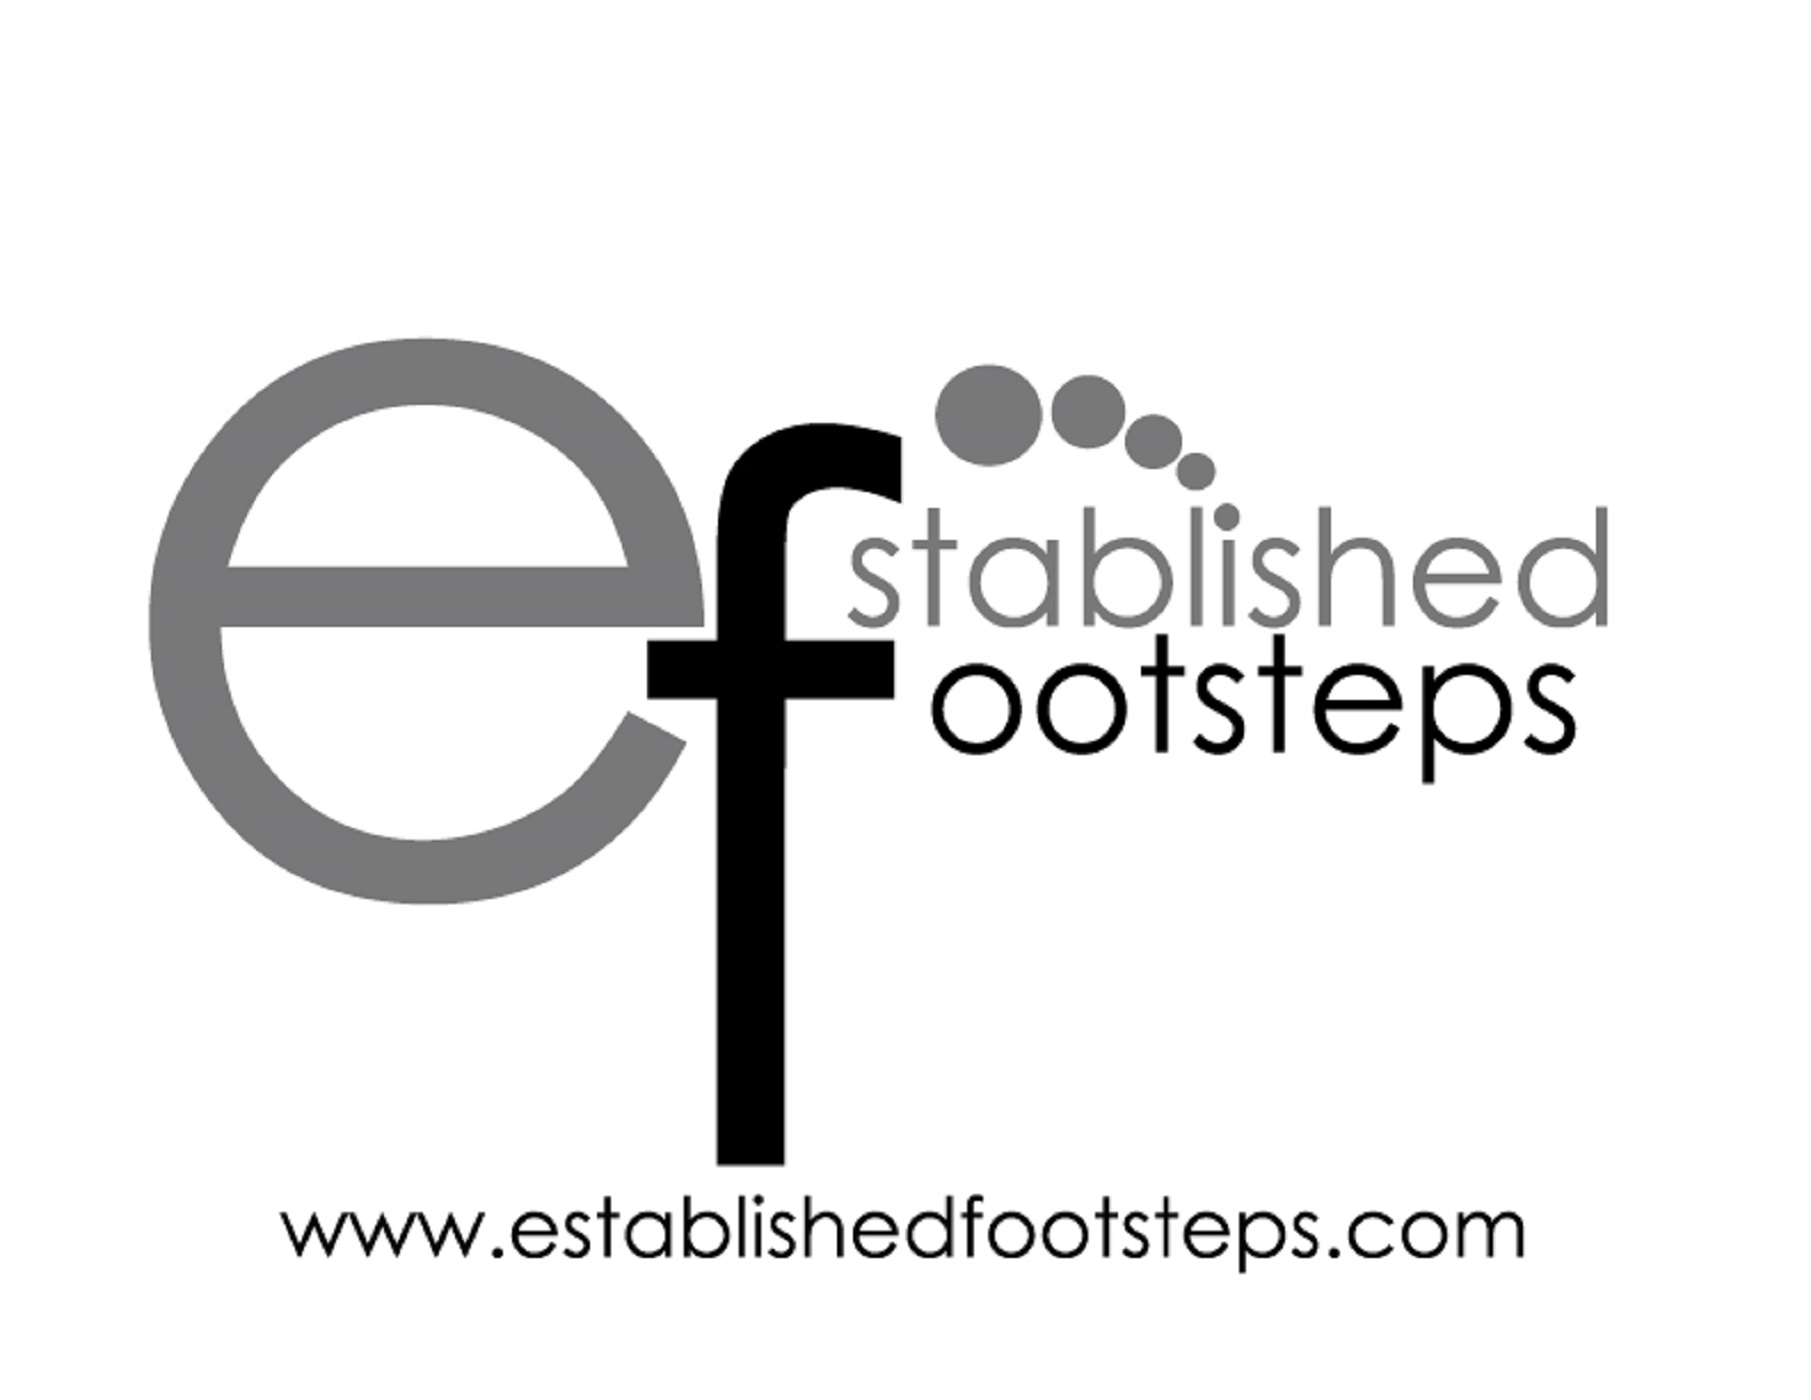 Established Footsteps